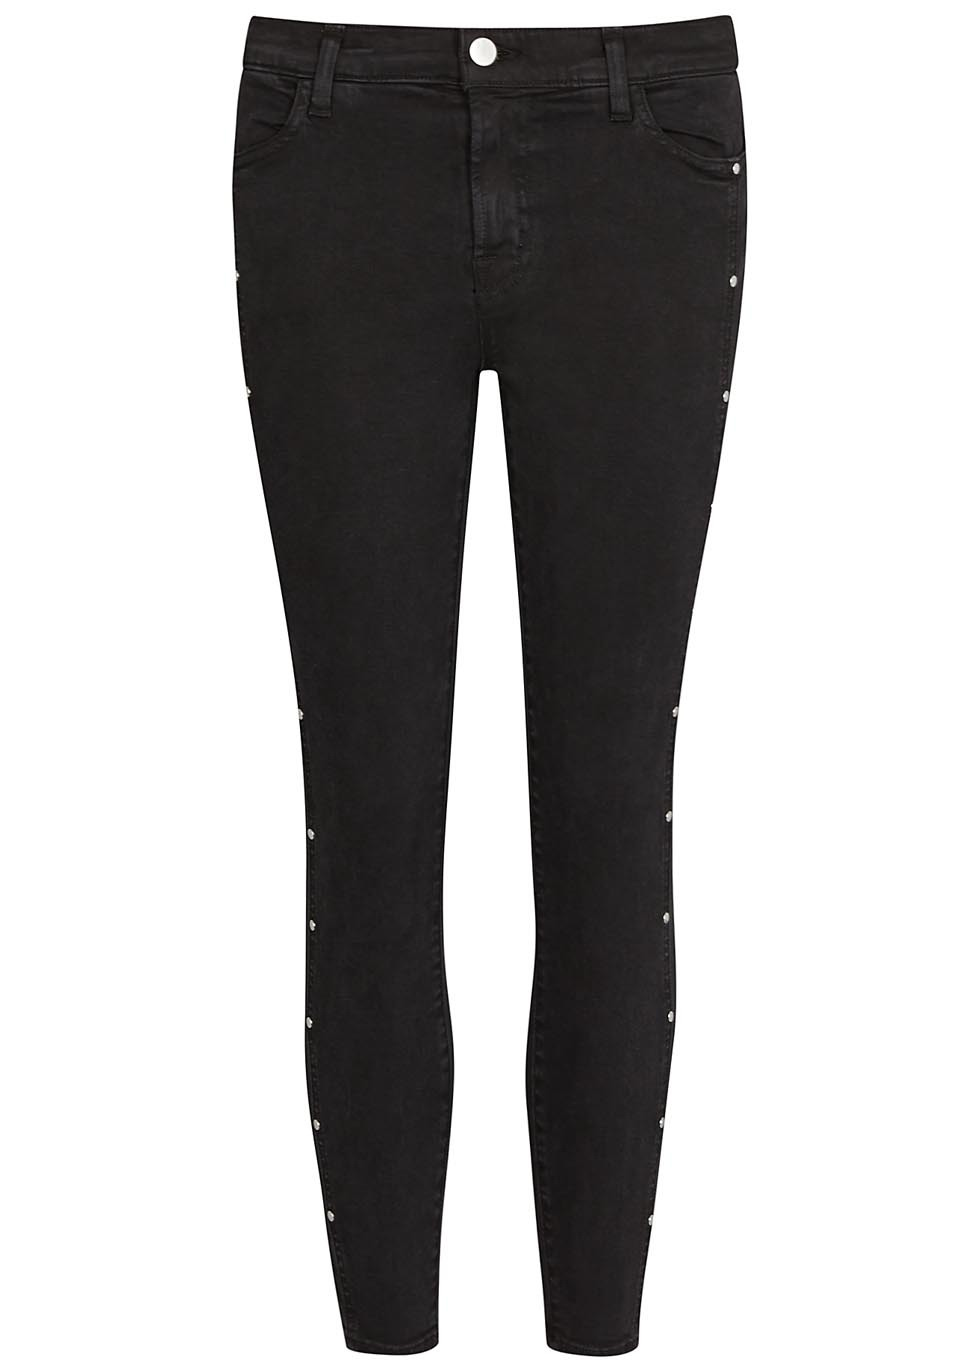 Alba Black Cropped Skinny Jeans - style: skinny leg; pattern: plain; pocket detail: traditional 5 pocket; waist: mid/regular rise; predominant colour: black; occasions: casual; length: calf length; fibres: cotton - stretch; texture group: denim; pattern type: fabric; embellishment: studs; season: s/s 2016; wardrobe: basic; embellishment location: hip